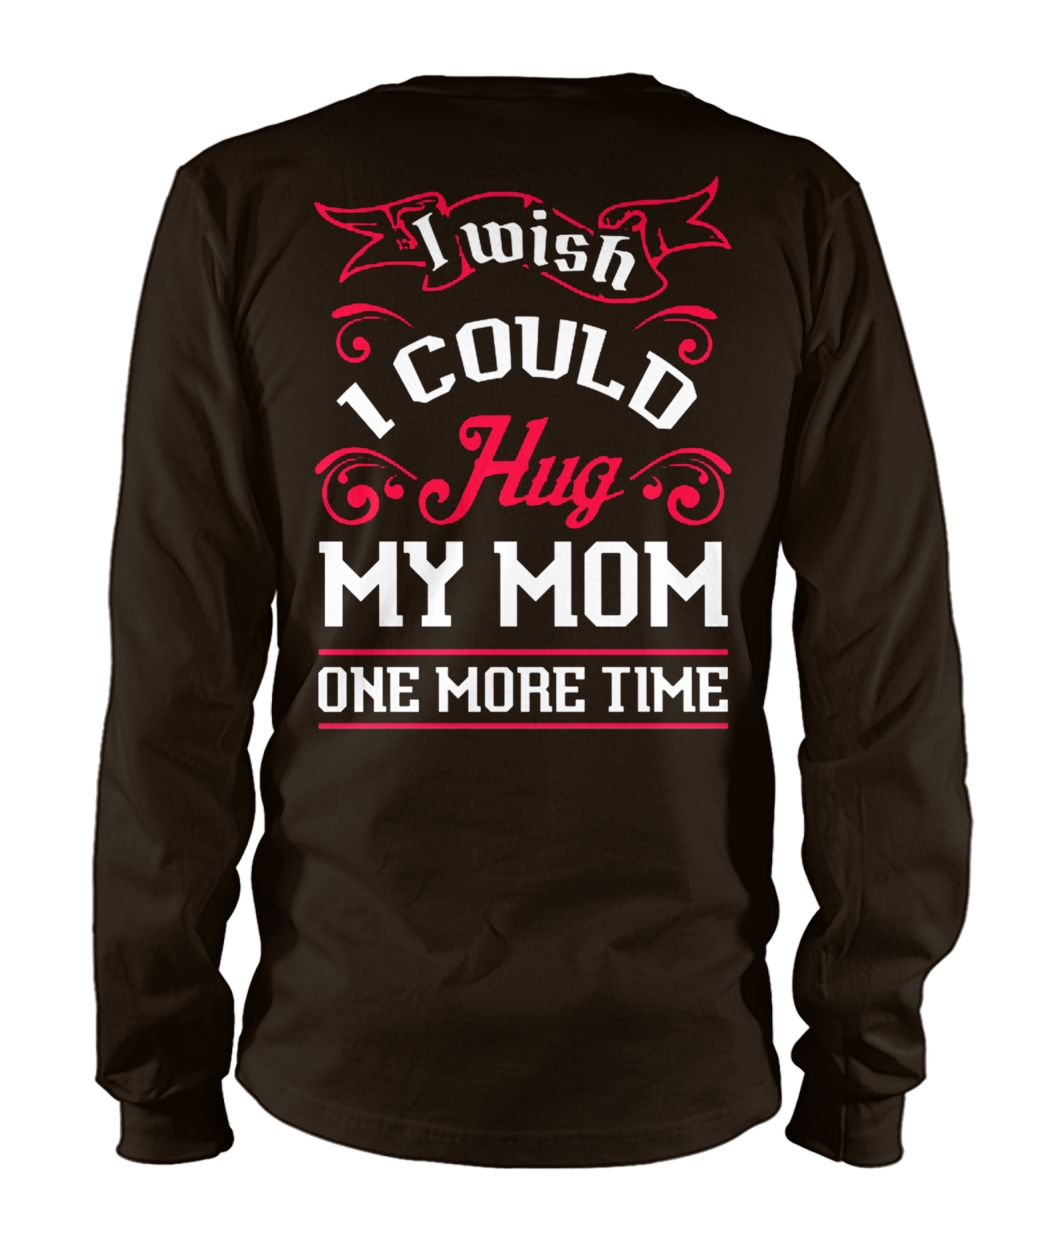 I wish I could hug my mom one more time unisex long sleeve